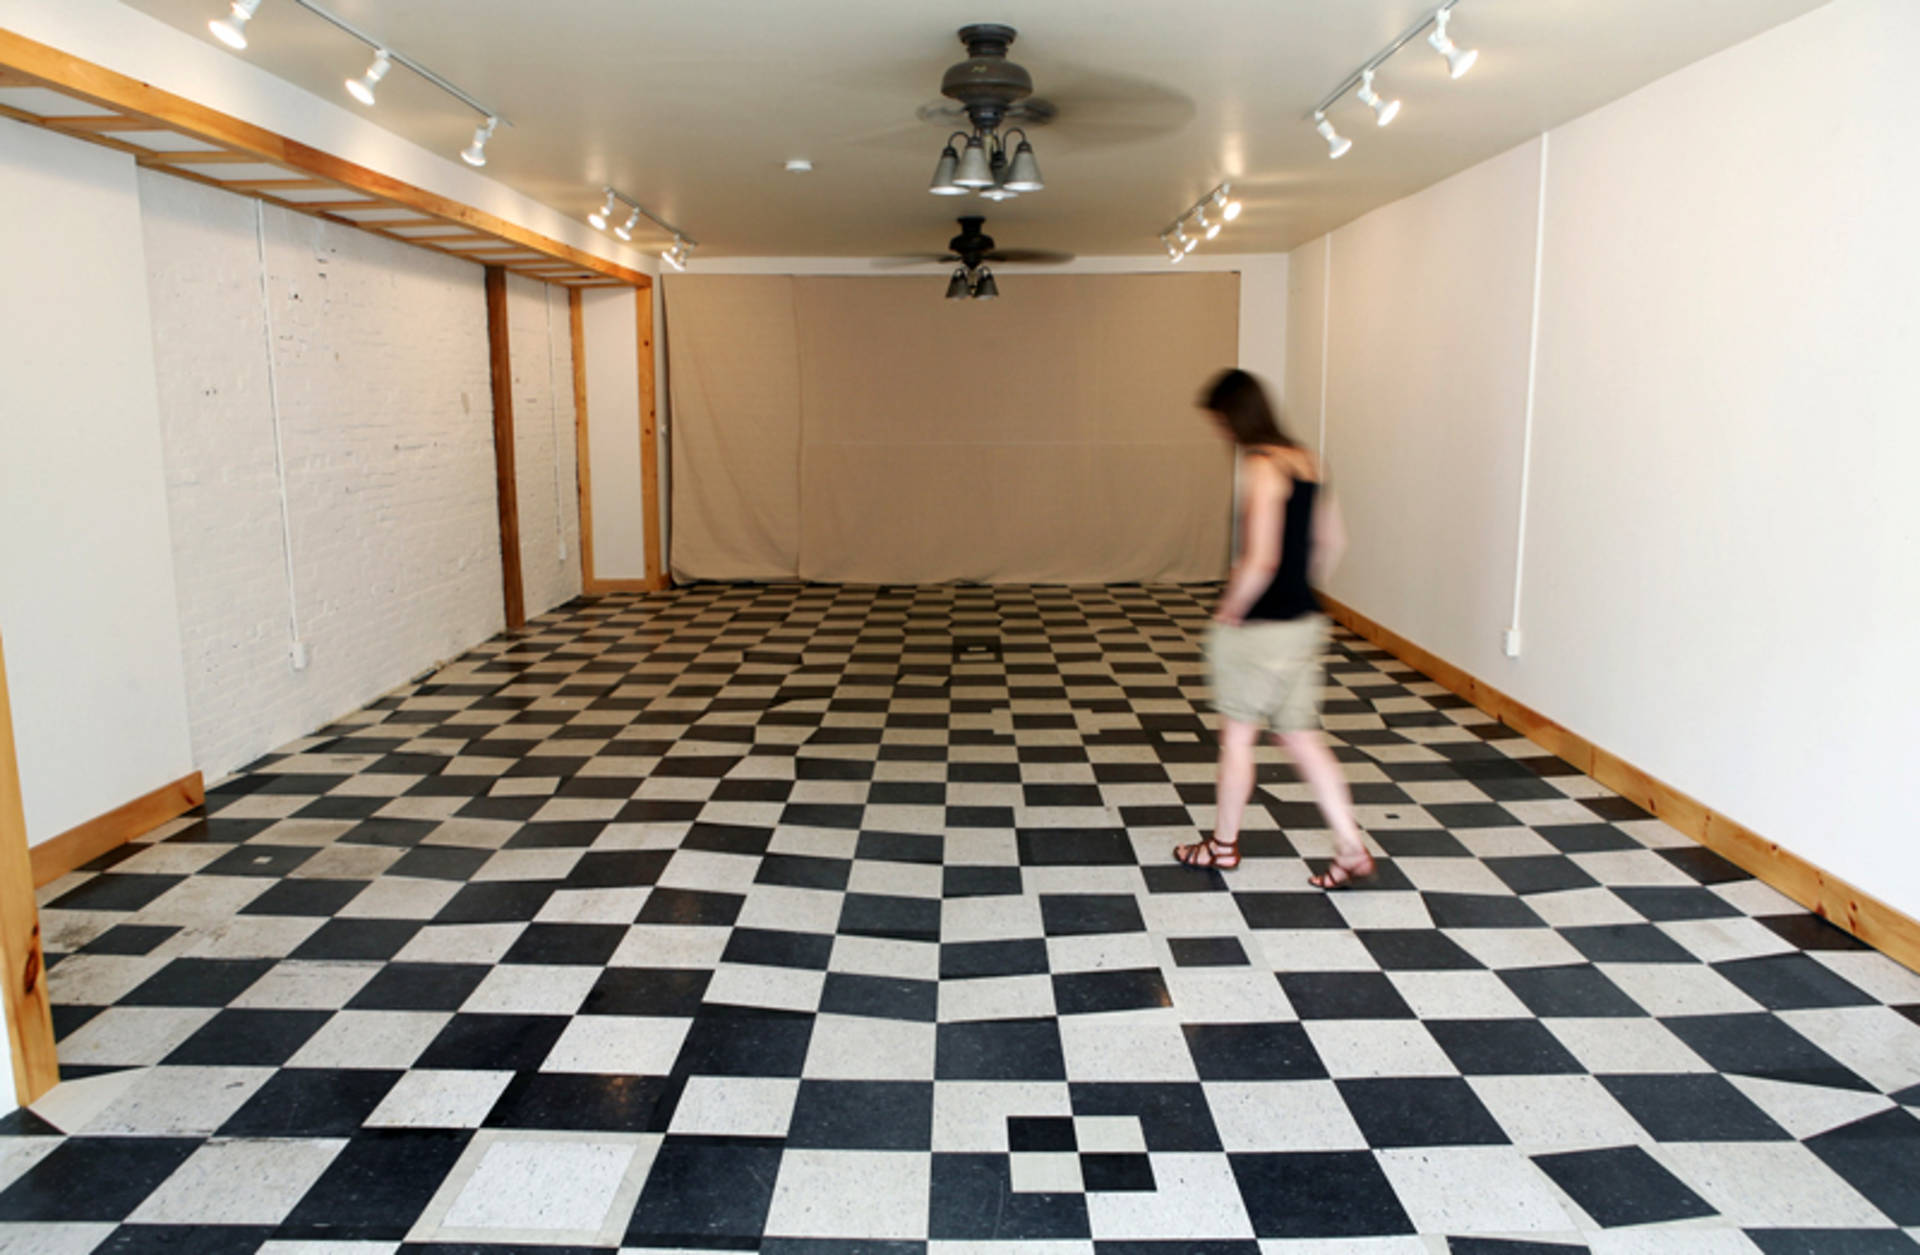 Four Strange And Surreal Rooms By Kyung Woo Han Home Reviews